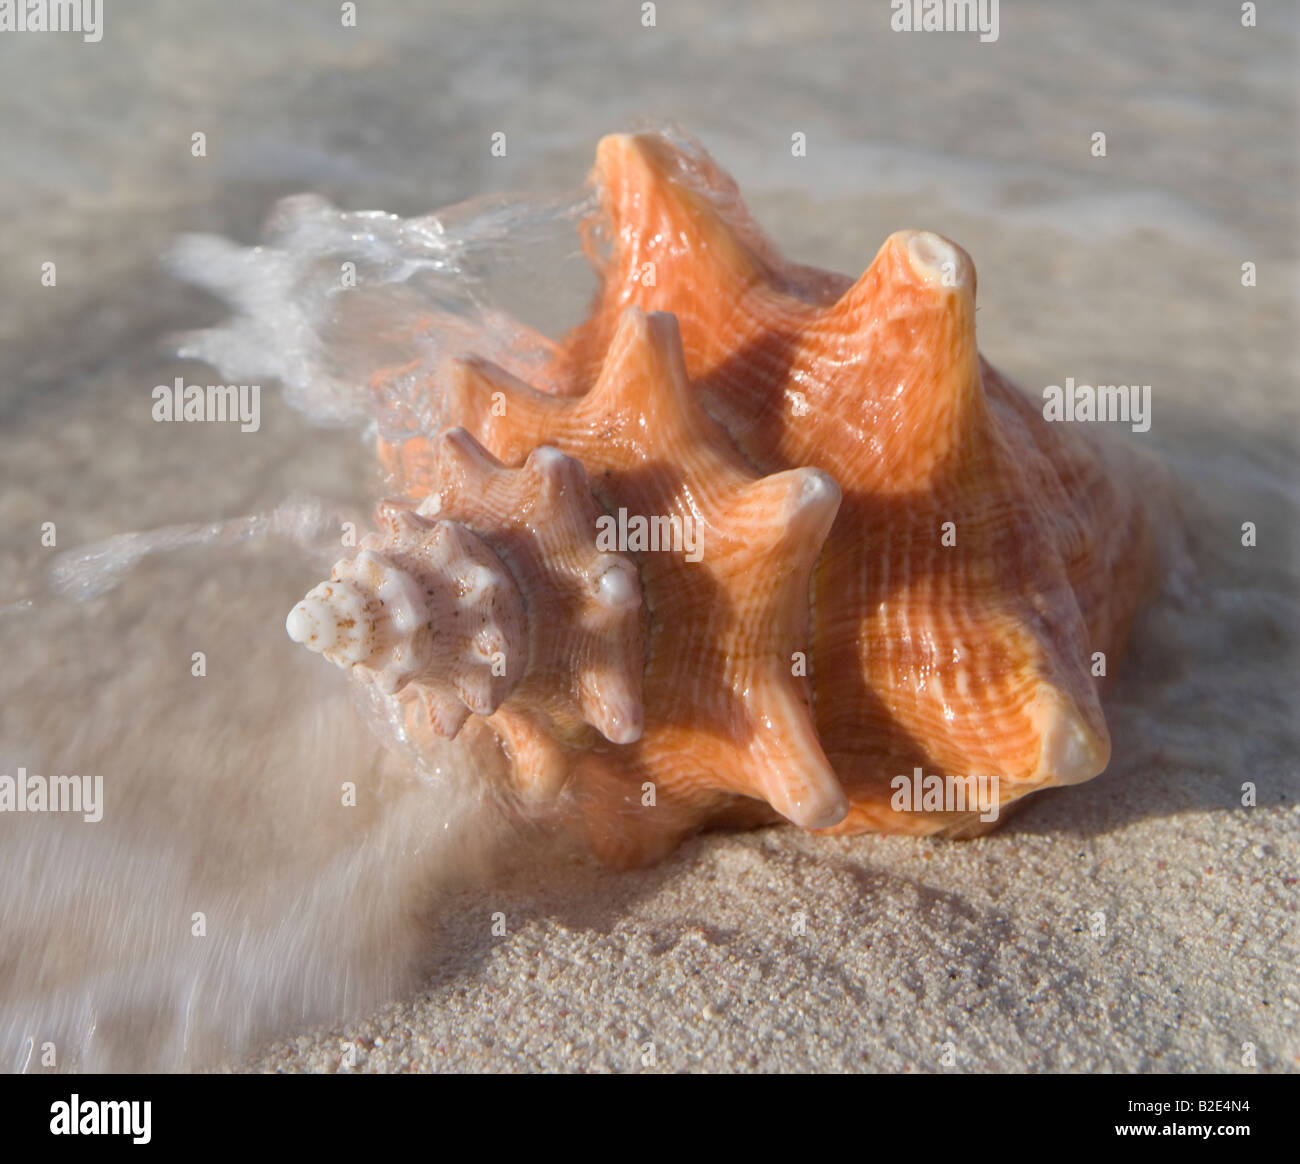 A mollusk shell on the beach - Stock Image